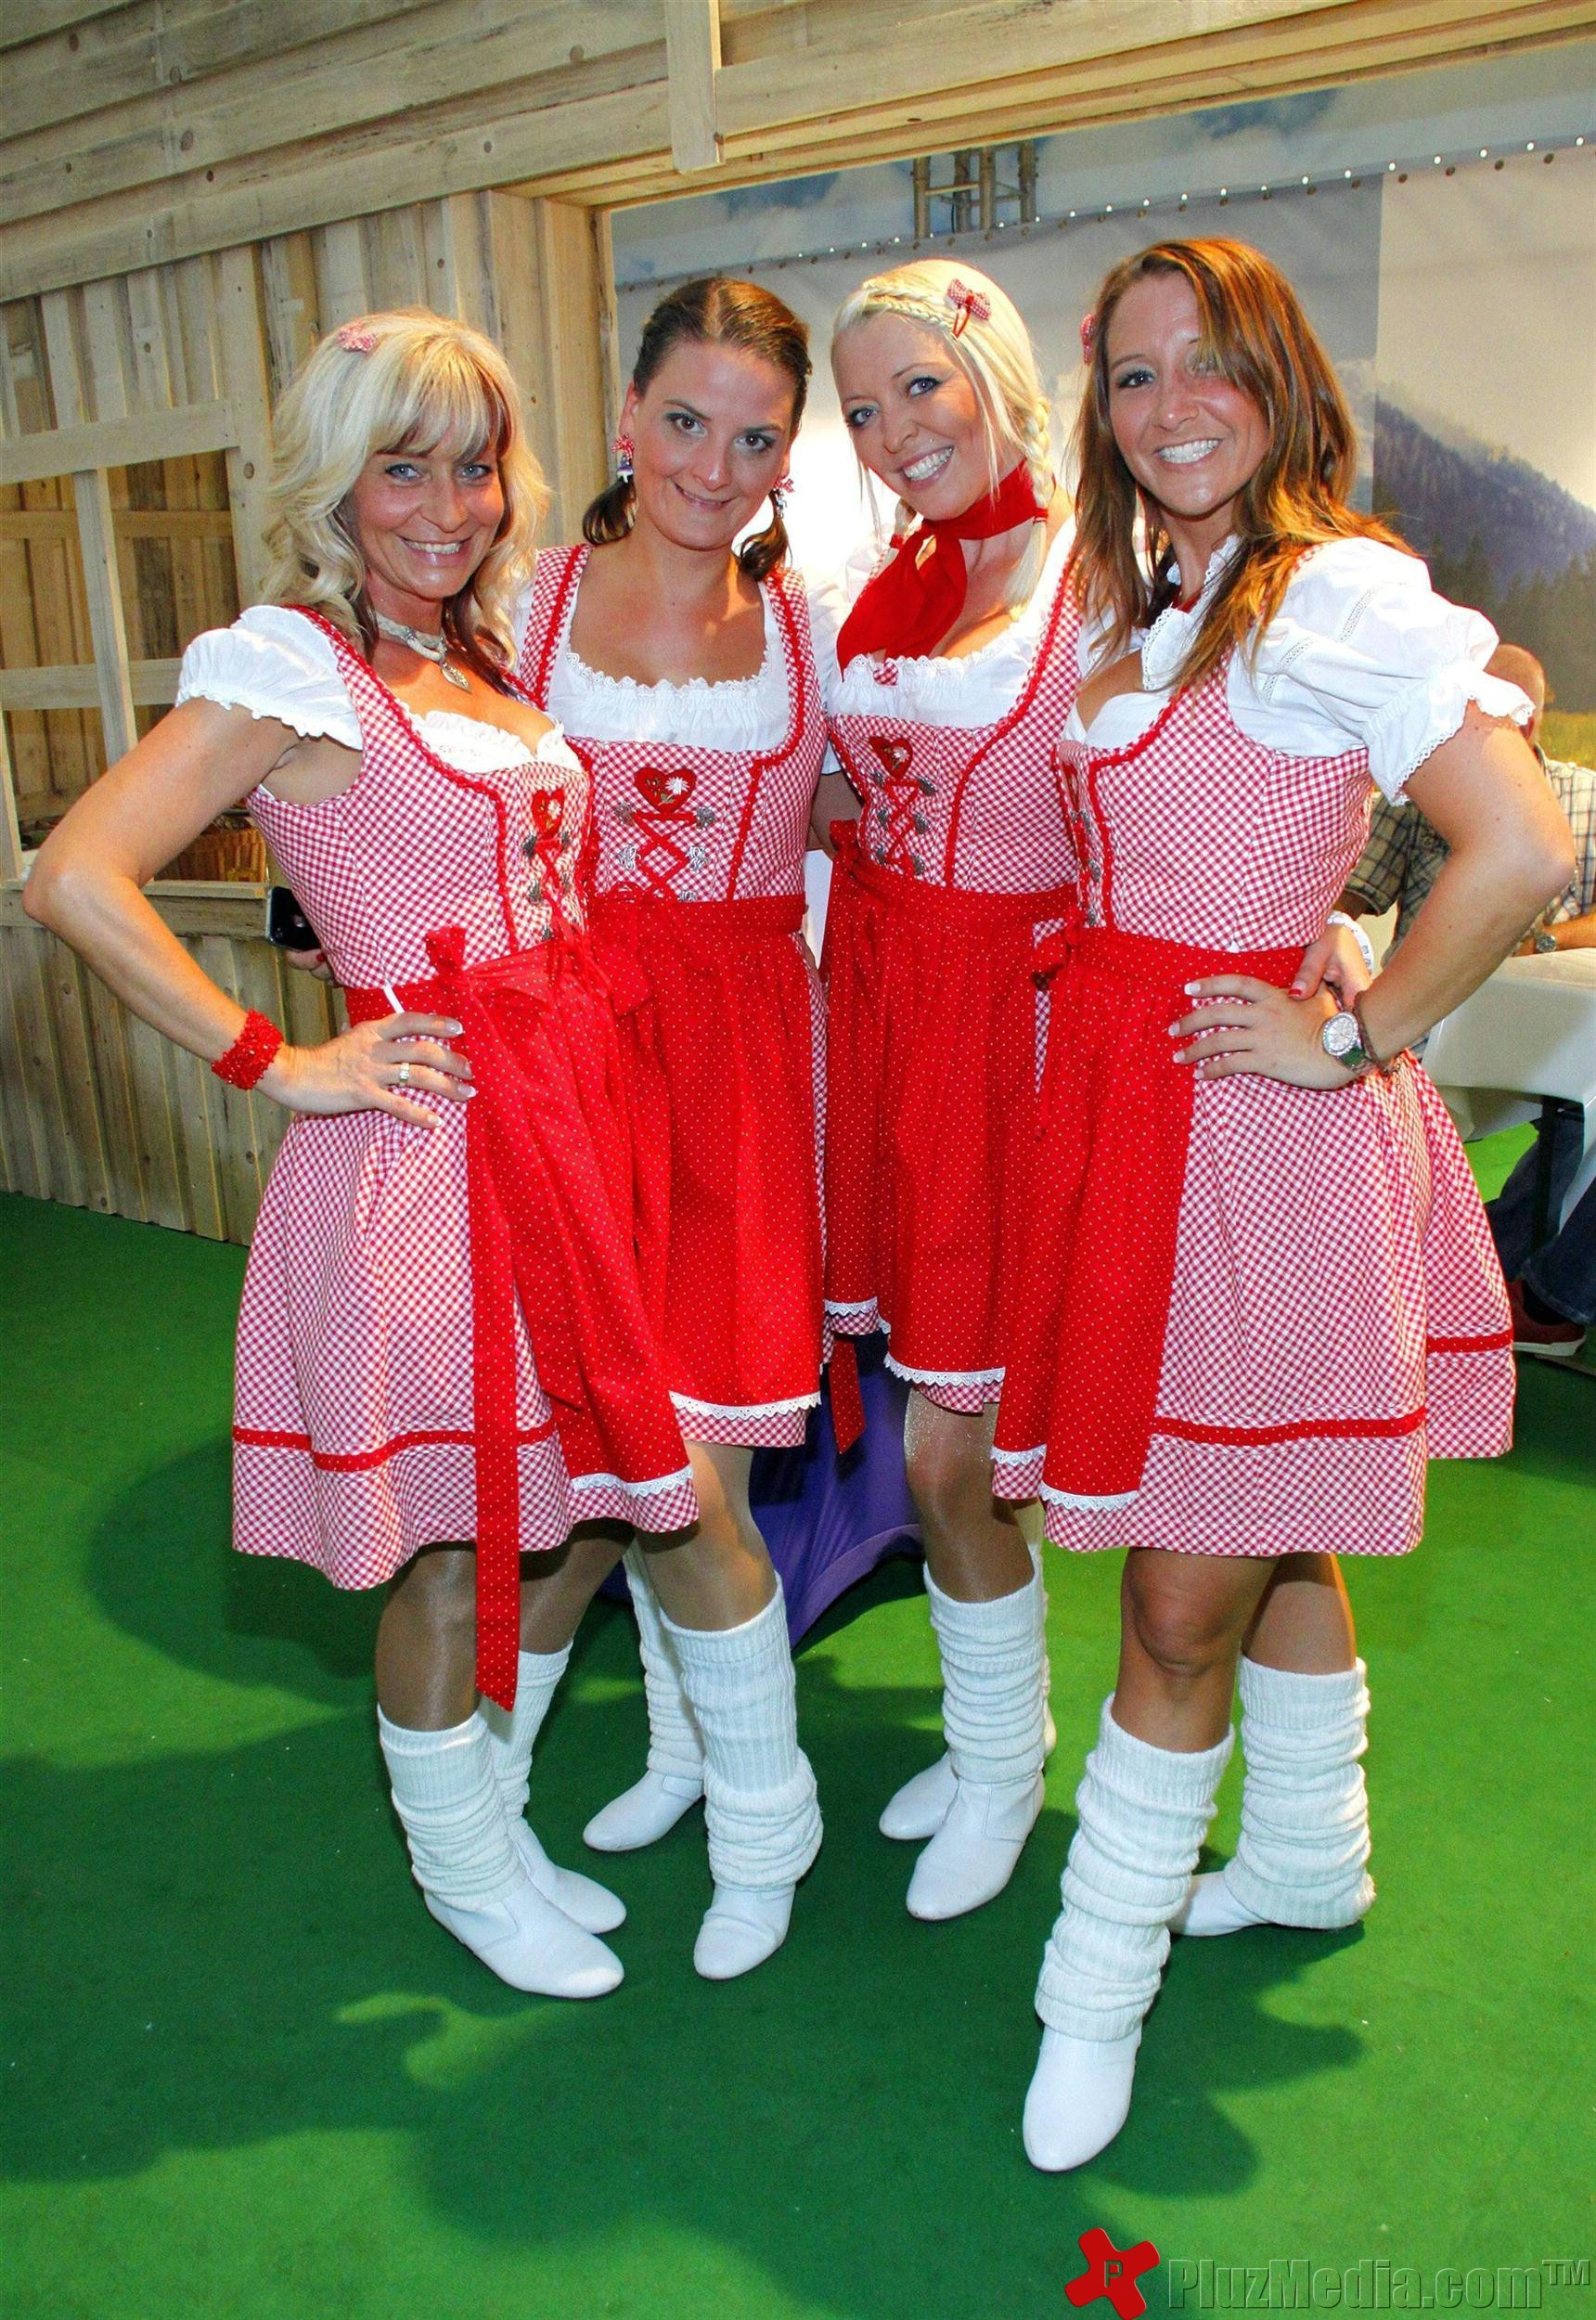 koelner oktoberfest at suedstadion cologne photos. Black Bedroom Furniture Sets. Home Design Ideas